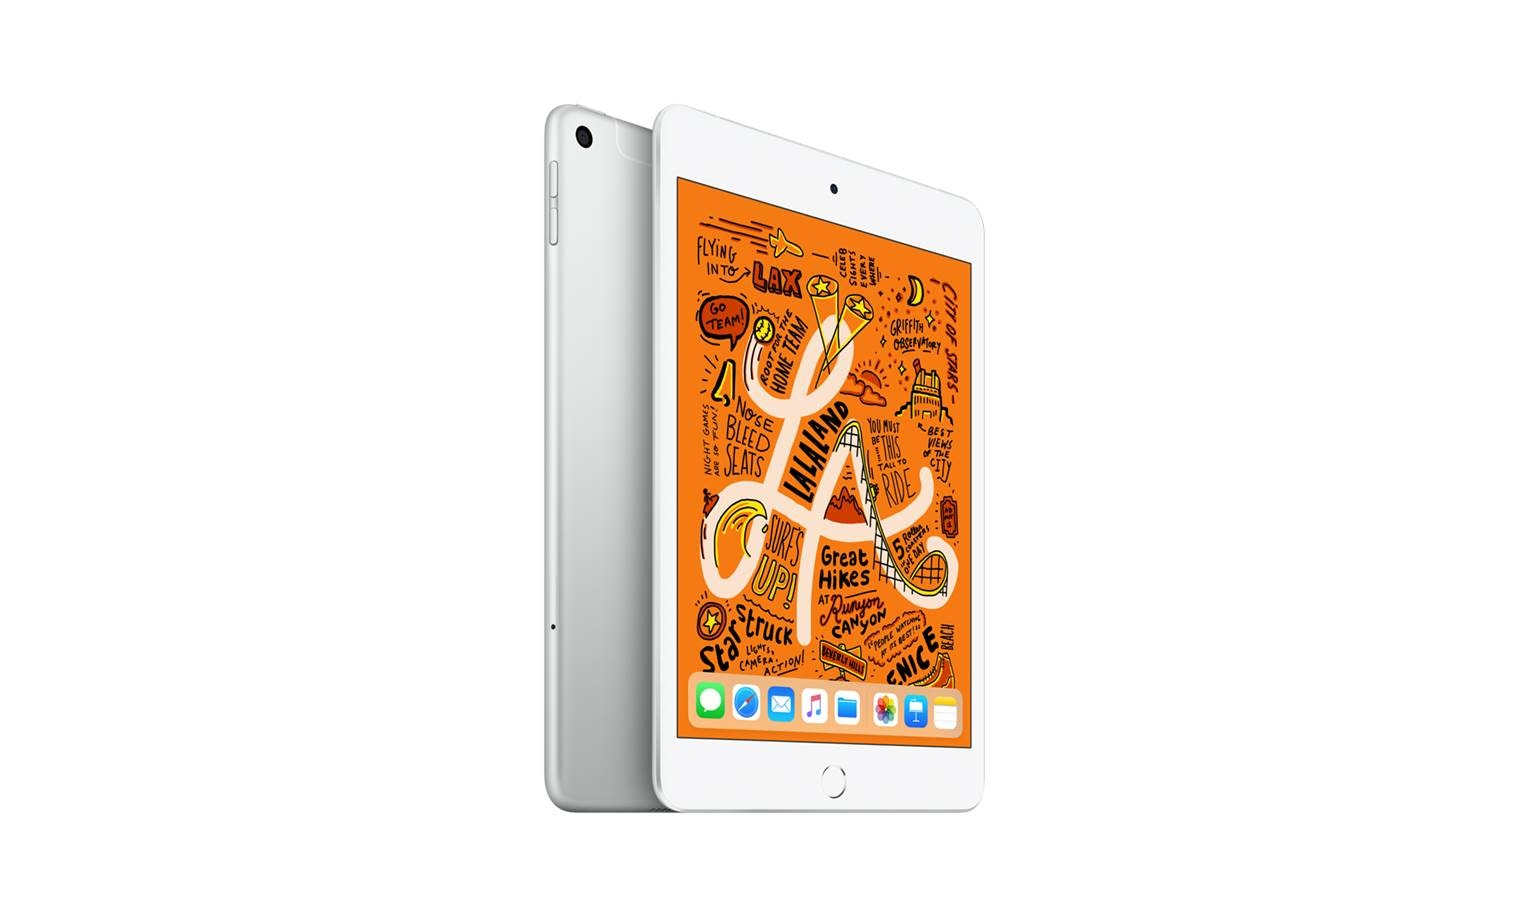 Apple iPad Mini 4G (256GB) - Silver (Front)